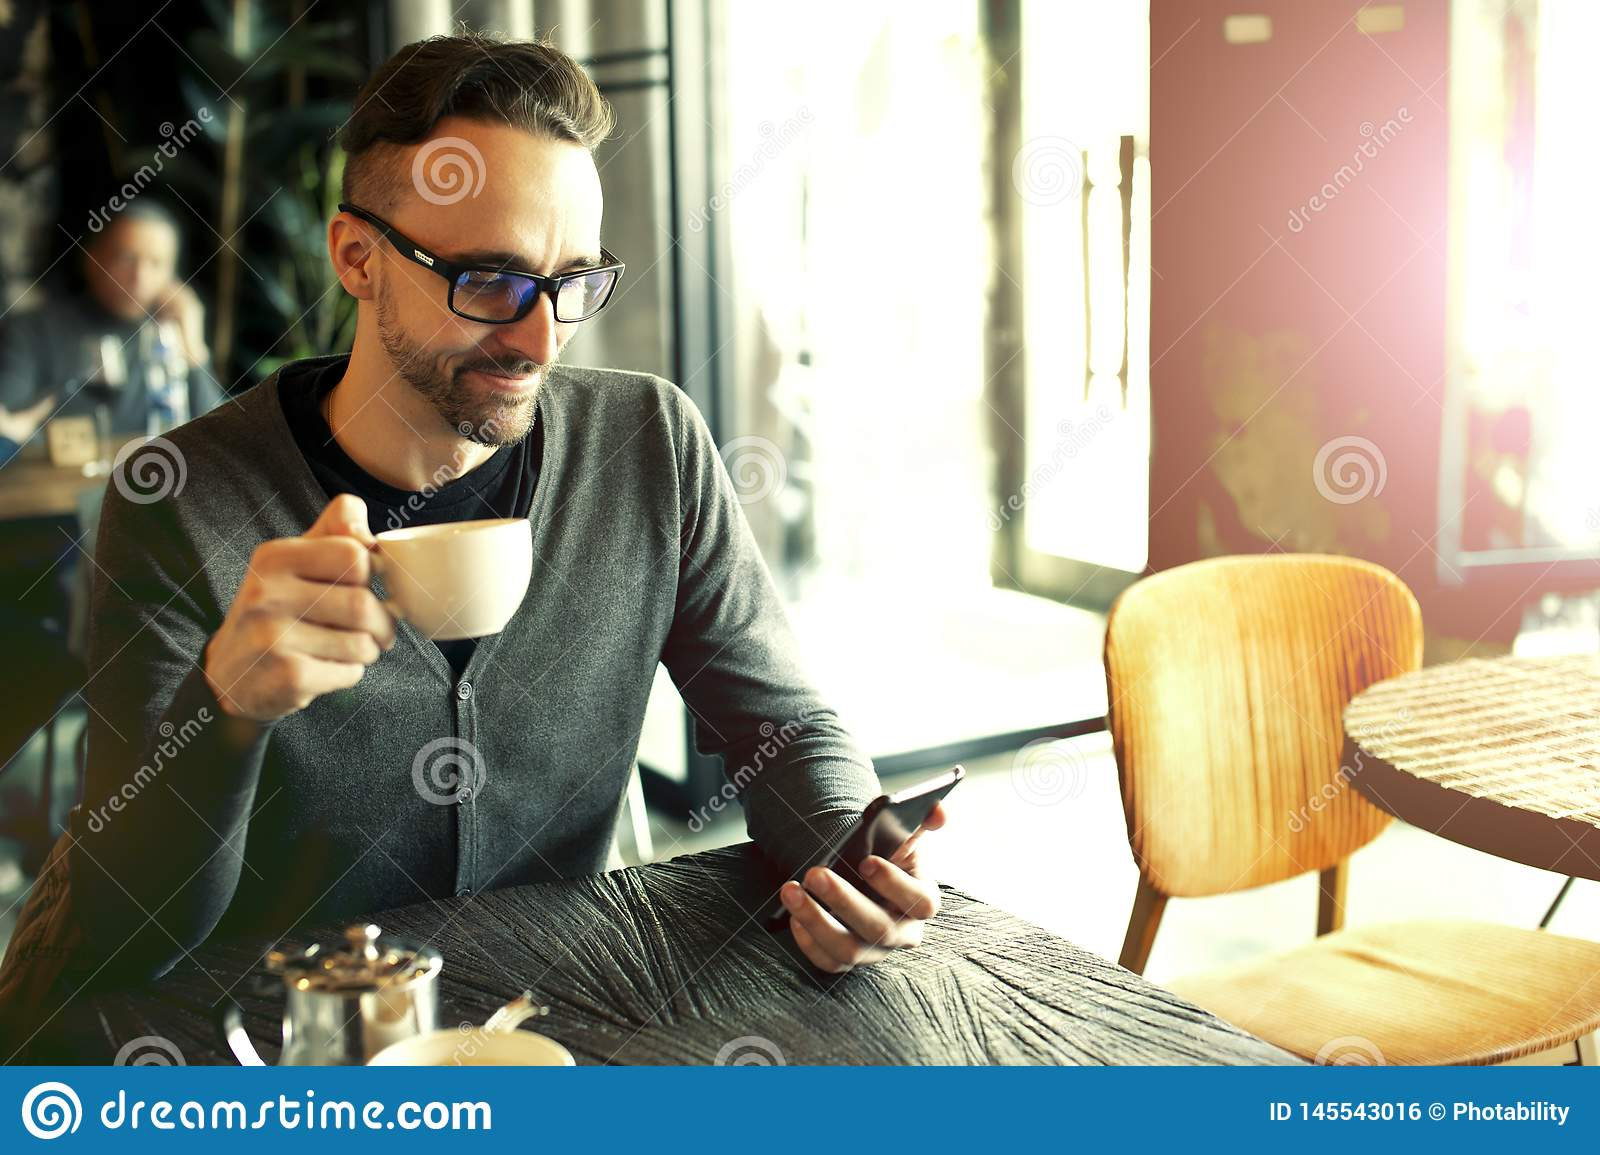 Man drinks coffee in a cafe